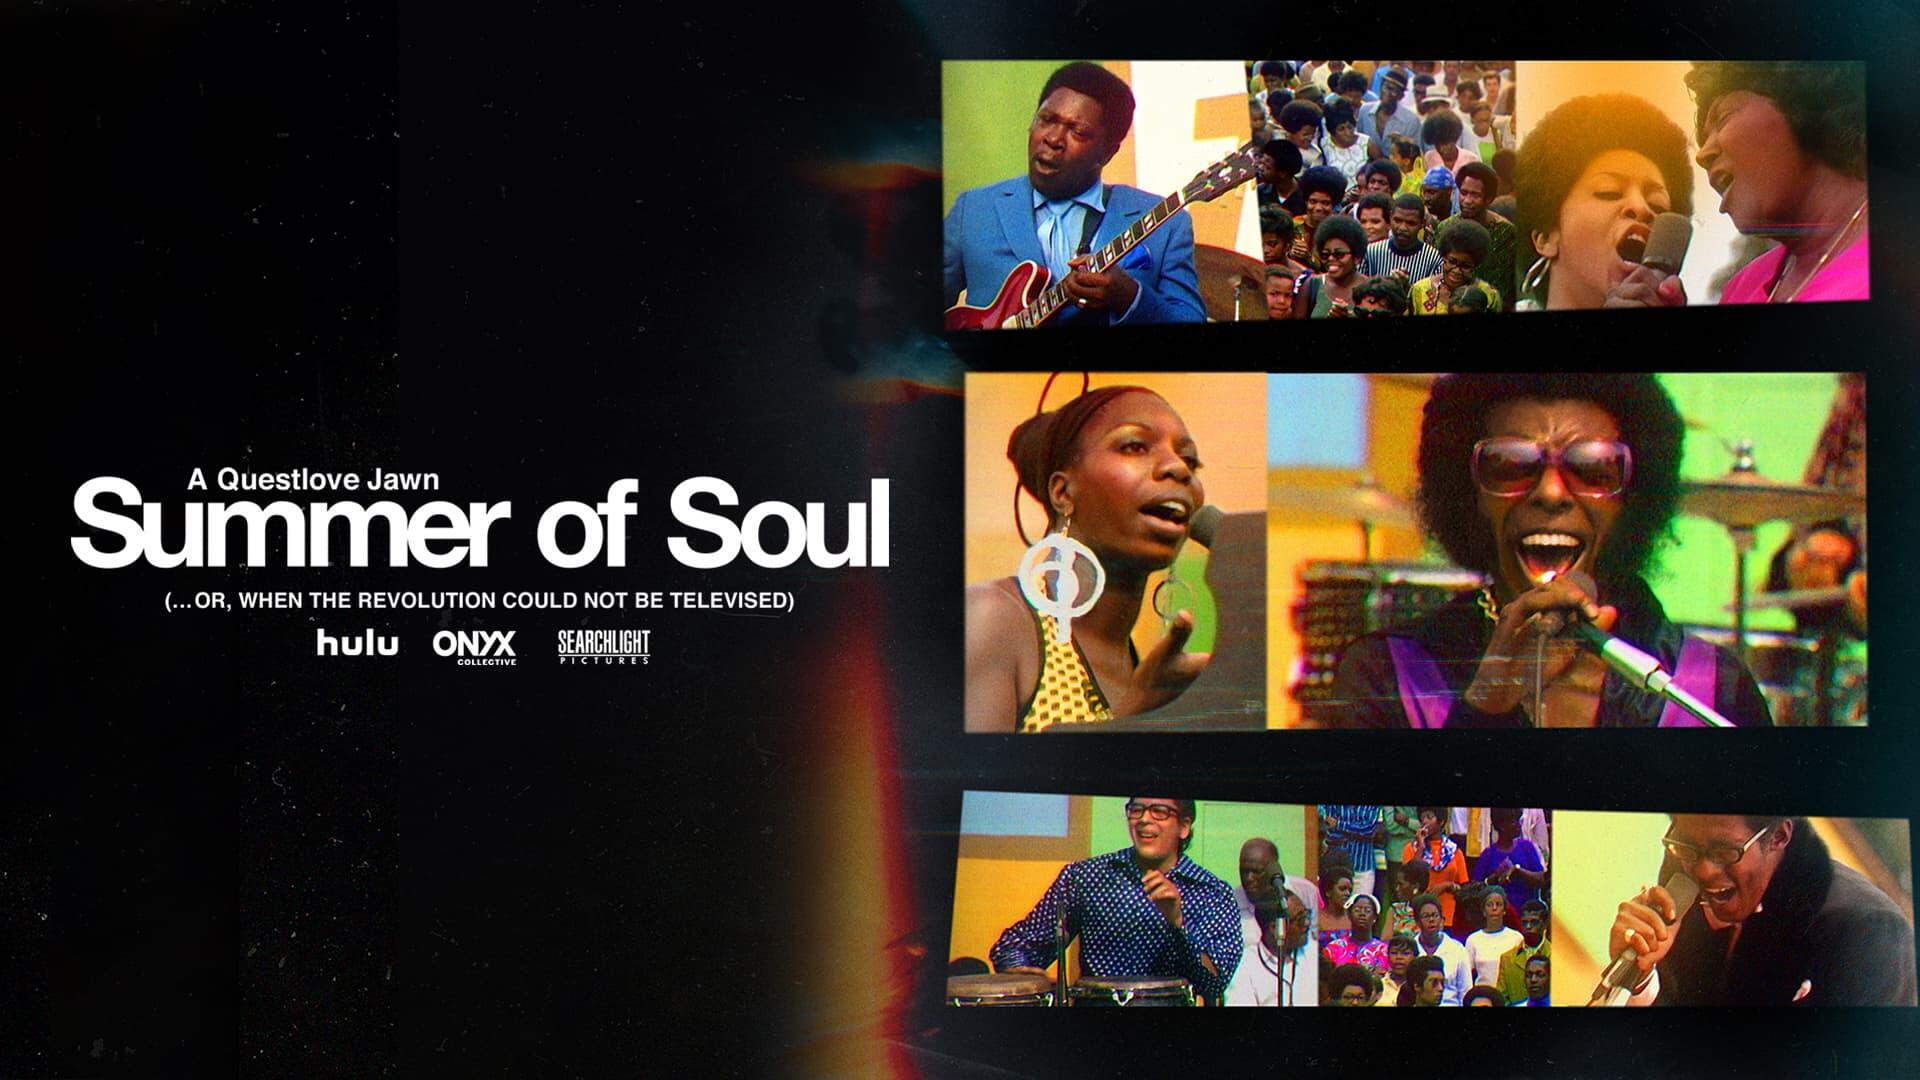 """Summer of Soul -- In his acclaimed debut as a filmmaker, Ahmir """"Questlove"""" Thompson presents a powerful and transporting documentary—part music film, part historical record created around an epic event that celebrated Black history, culture and fashion. Over the course of six weeks in the summer of 1969, just one hundred miles south of Woodstock, The Harlem Cultural Festival was filmed in Mount Morris Park (now Marcus Garvey Park). The footage was never seen and largely forgotten–until now. SUMMER OF SOUL shines a light on the importance of history to our spiritual well-being and stands as a testament to the healing power of music during times of unrest, both past and present. The feature includes never-before-seen concert performances by Stevie Wonder, Nina Simone, Sly & the Family Stone, Gladys Knight & the Pips, Mahalia Jackson, B.B. King, The 5th Dimension and more. """"Summer of Soul (…Or, When the Revolution Could Not Be Televised),"""" A Vulcan Productions Inc. Production, In Association With Concordia Studio, Play/Action Pictures, LarryBilly Productions, Produced by Mass Distraction Media and RadicalMedia, is directed by Ahmir """"Questlove"""" Thompson, and produced by Joseph Patel p.g.a., Robert Fyvolent p.g.a., and David Dinerstein p.g.a. Jen Isaacson, Jon Kamen, Dave Sirulnick, Jody Allen, Ruth Johnston, Rocky Collins, Jannat Gargi, Beth Hubbard, Davis Guggenheim, Laurene Powell Jobs, Jeffrey Lurie, Marie Therese Guirgis, David Barse, Ron Eisenberg, Sheila C. Johnson and Ahmir """"Questlove"""" Thompson are executive producers. (Courtesy of Searchlight Pictures)"""